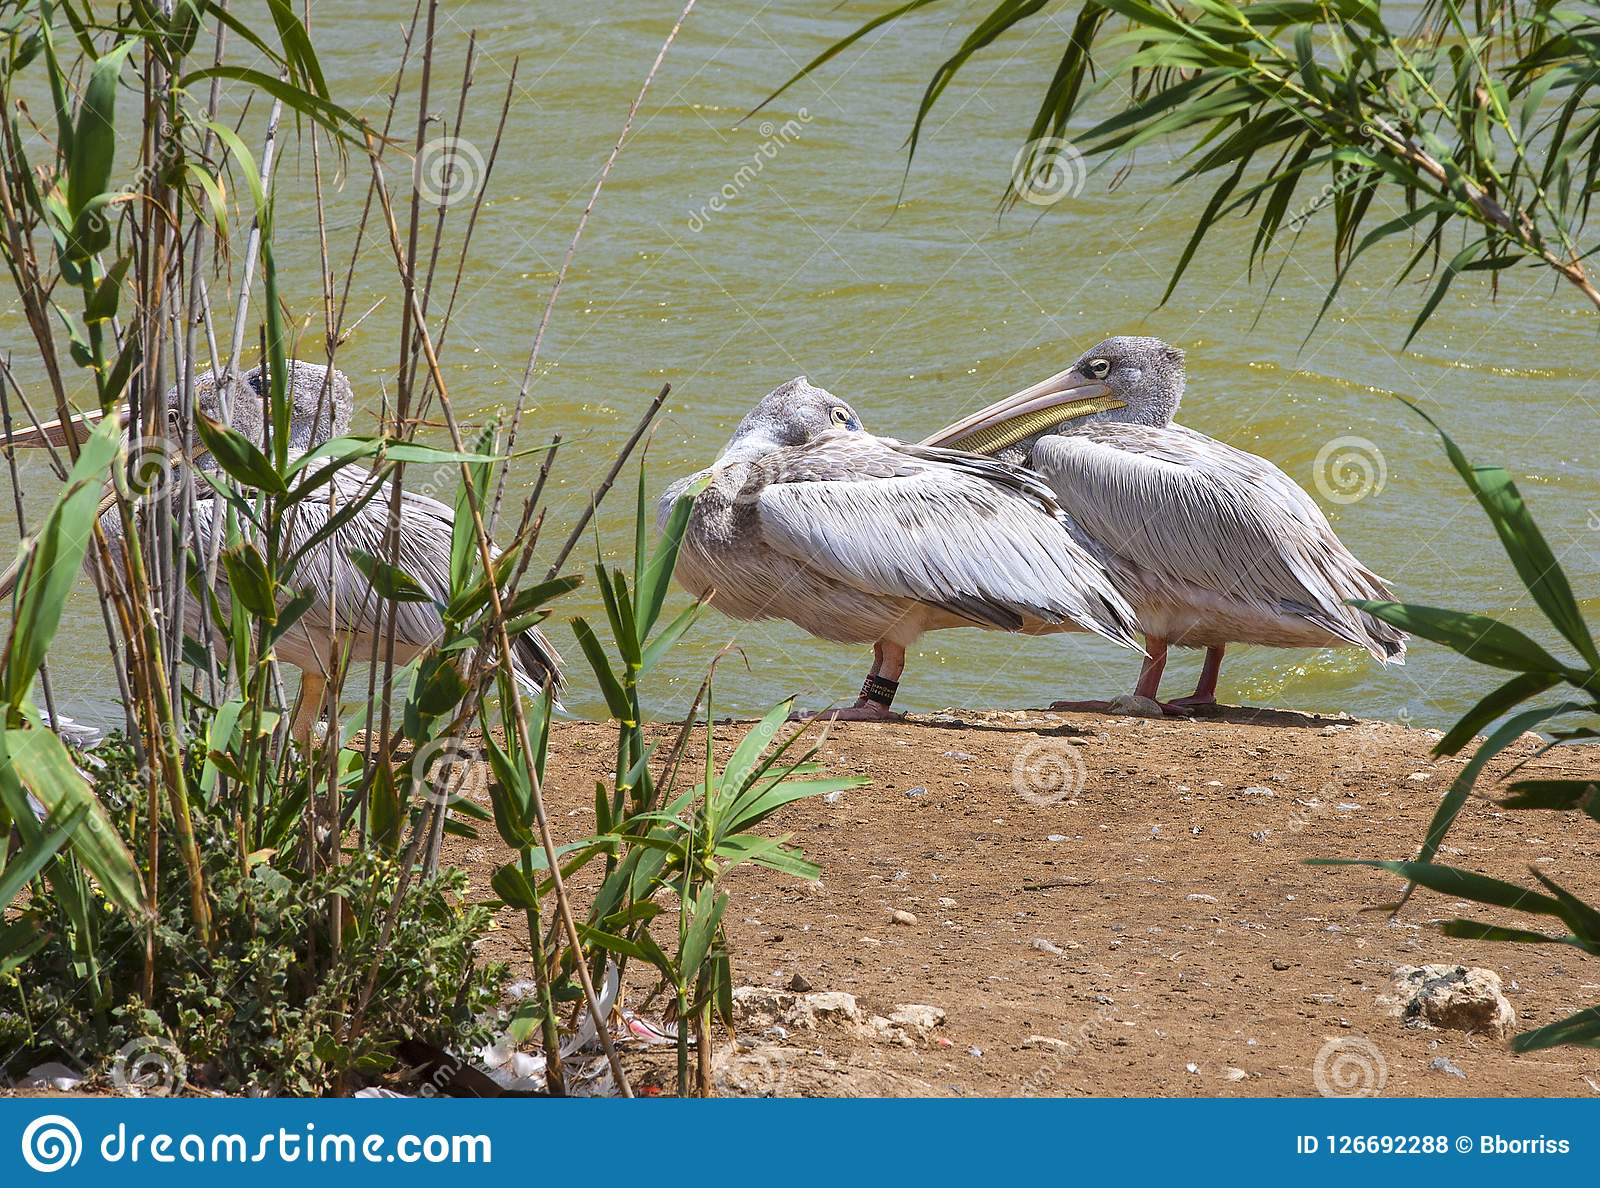 Great white or eastern white pelican, rosy pelican or white pelican is a bird in the pelican family.It breeds from southeastern Eu